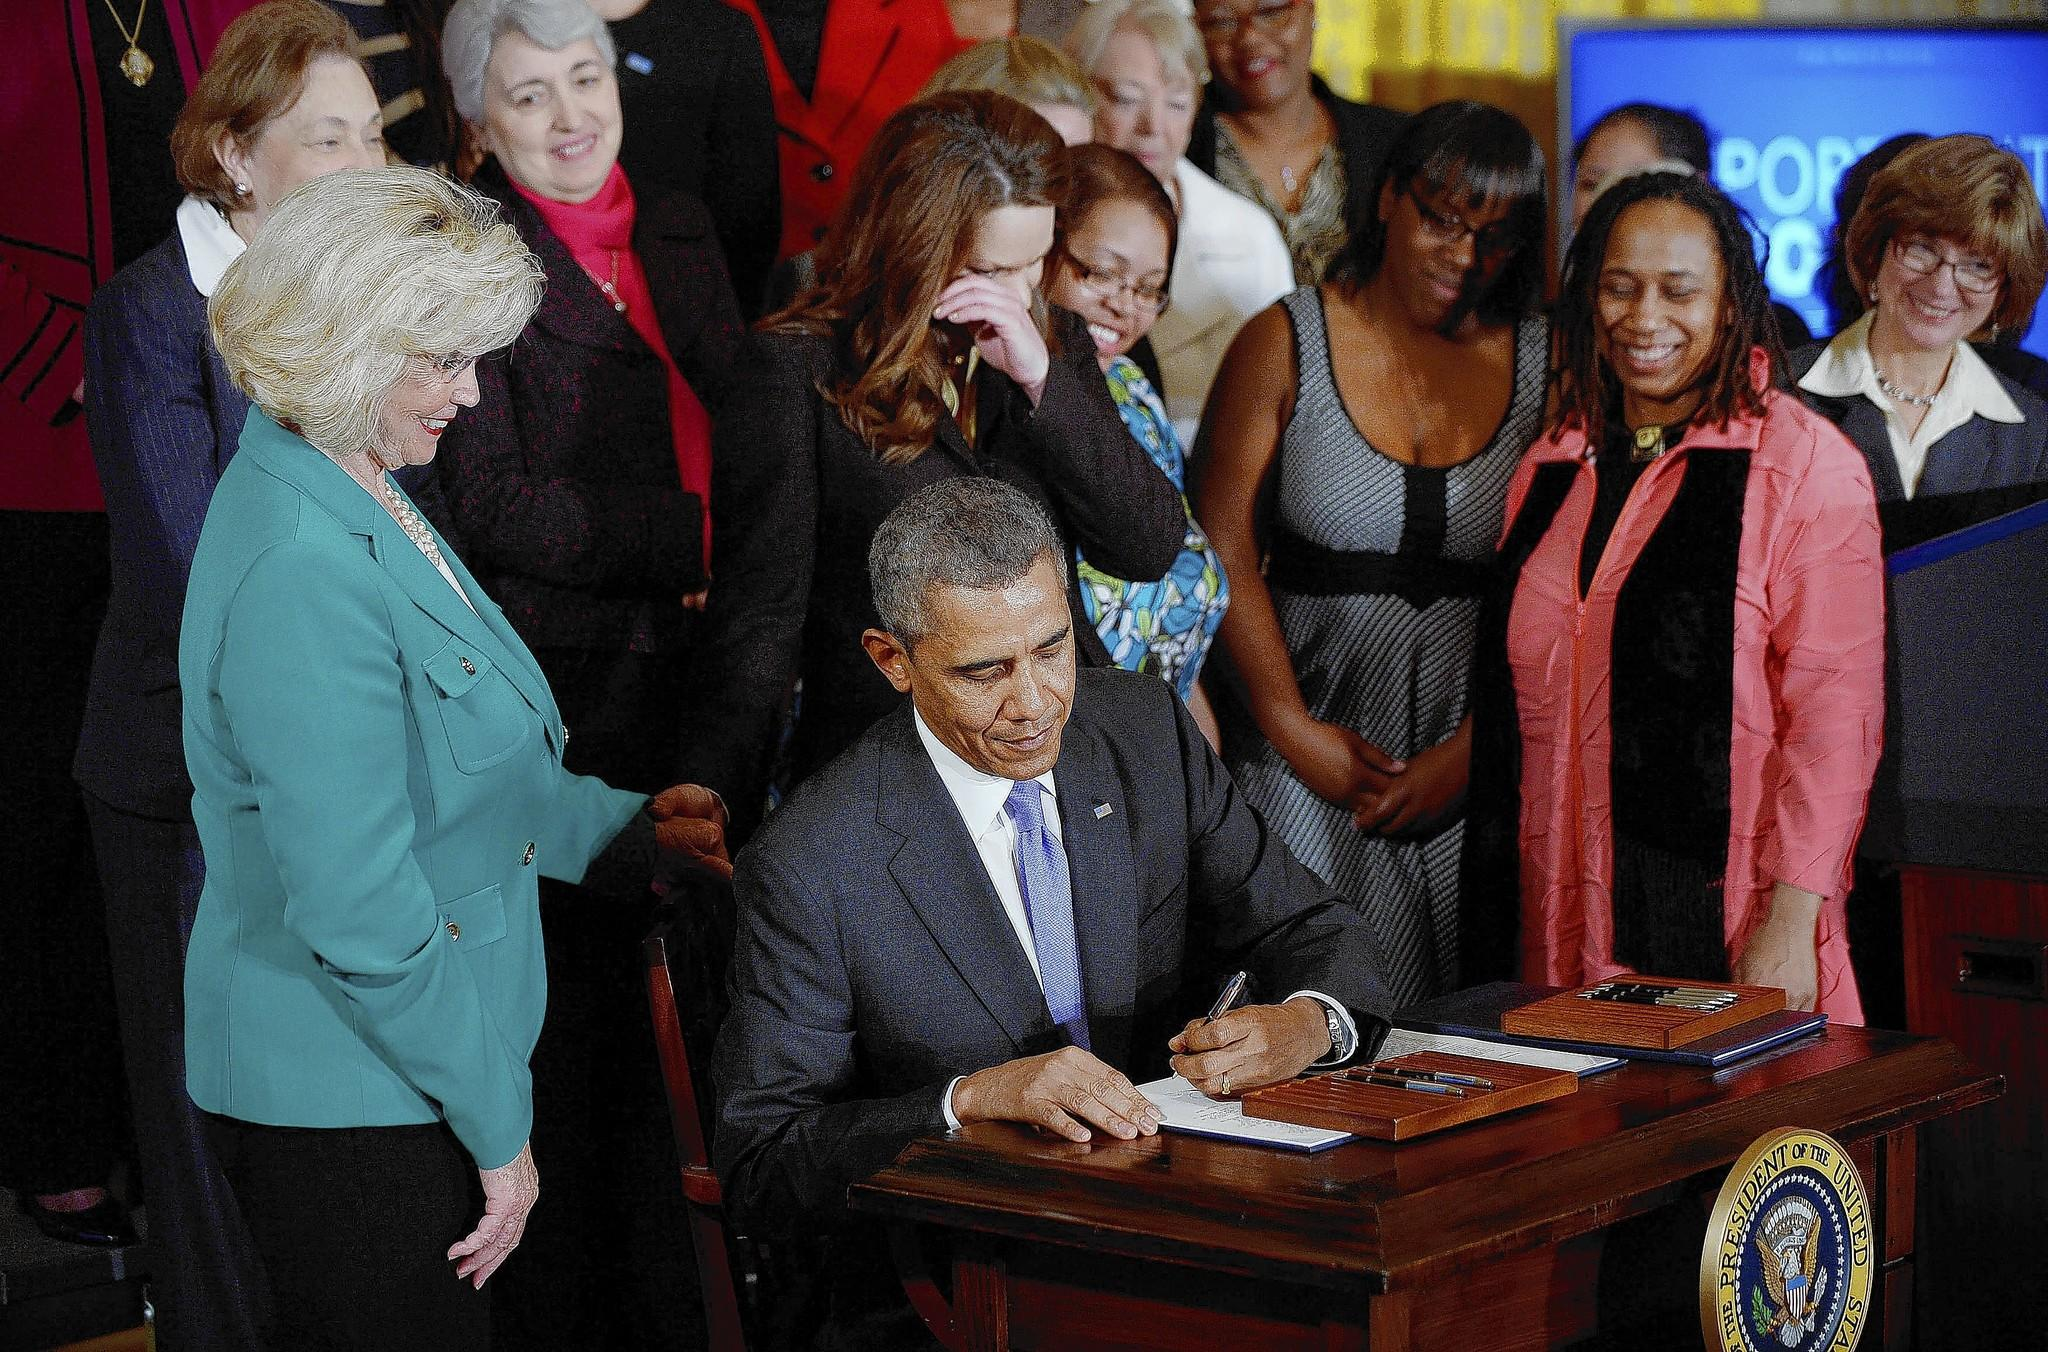 President Barack Obama signs executive orders on equal pay at the White House on April 8 as women including Lilly Ledbetter, left, look on.